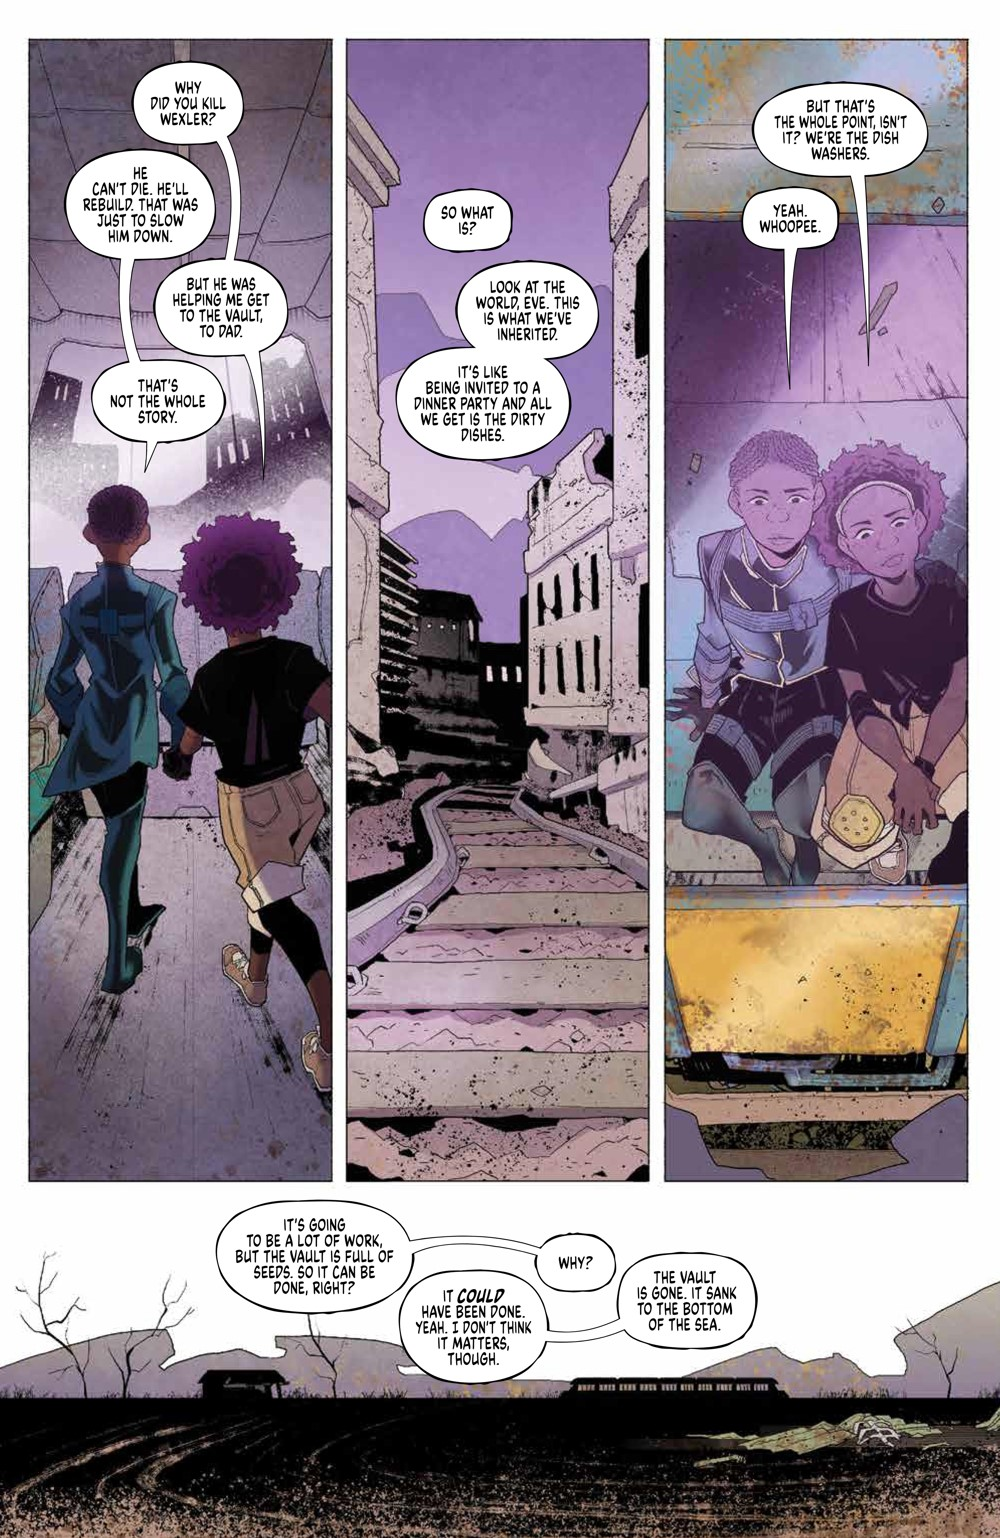 Eve_004_PRESS_6 ComicList Previews: EVE #4 (OF 5)